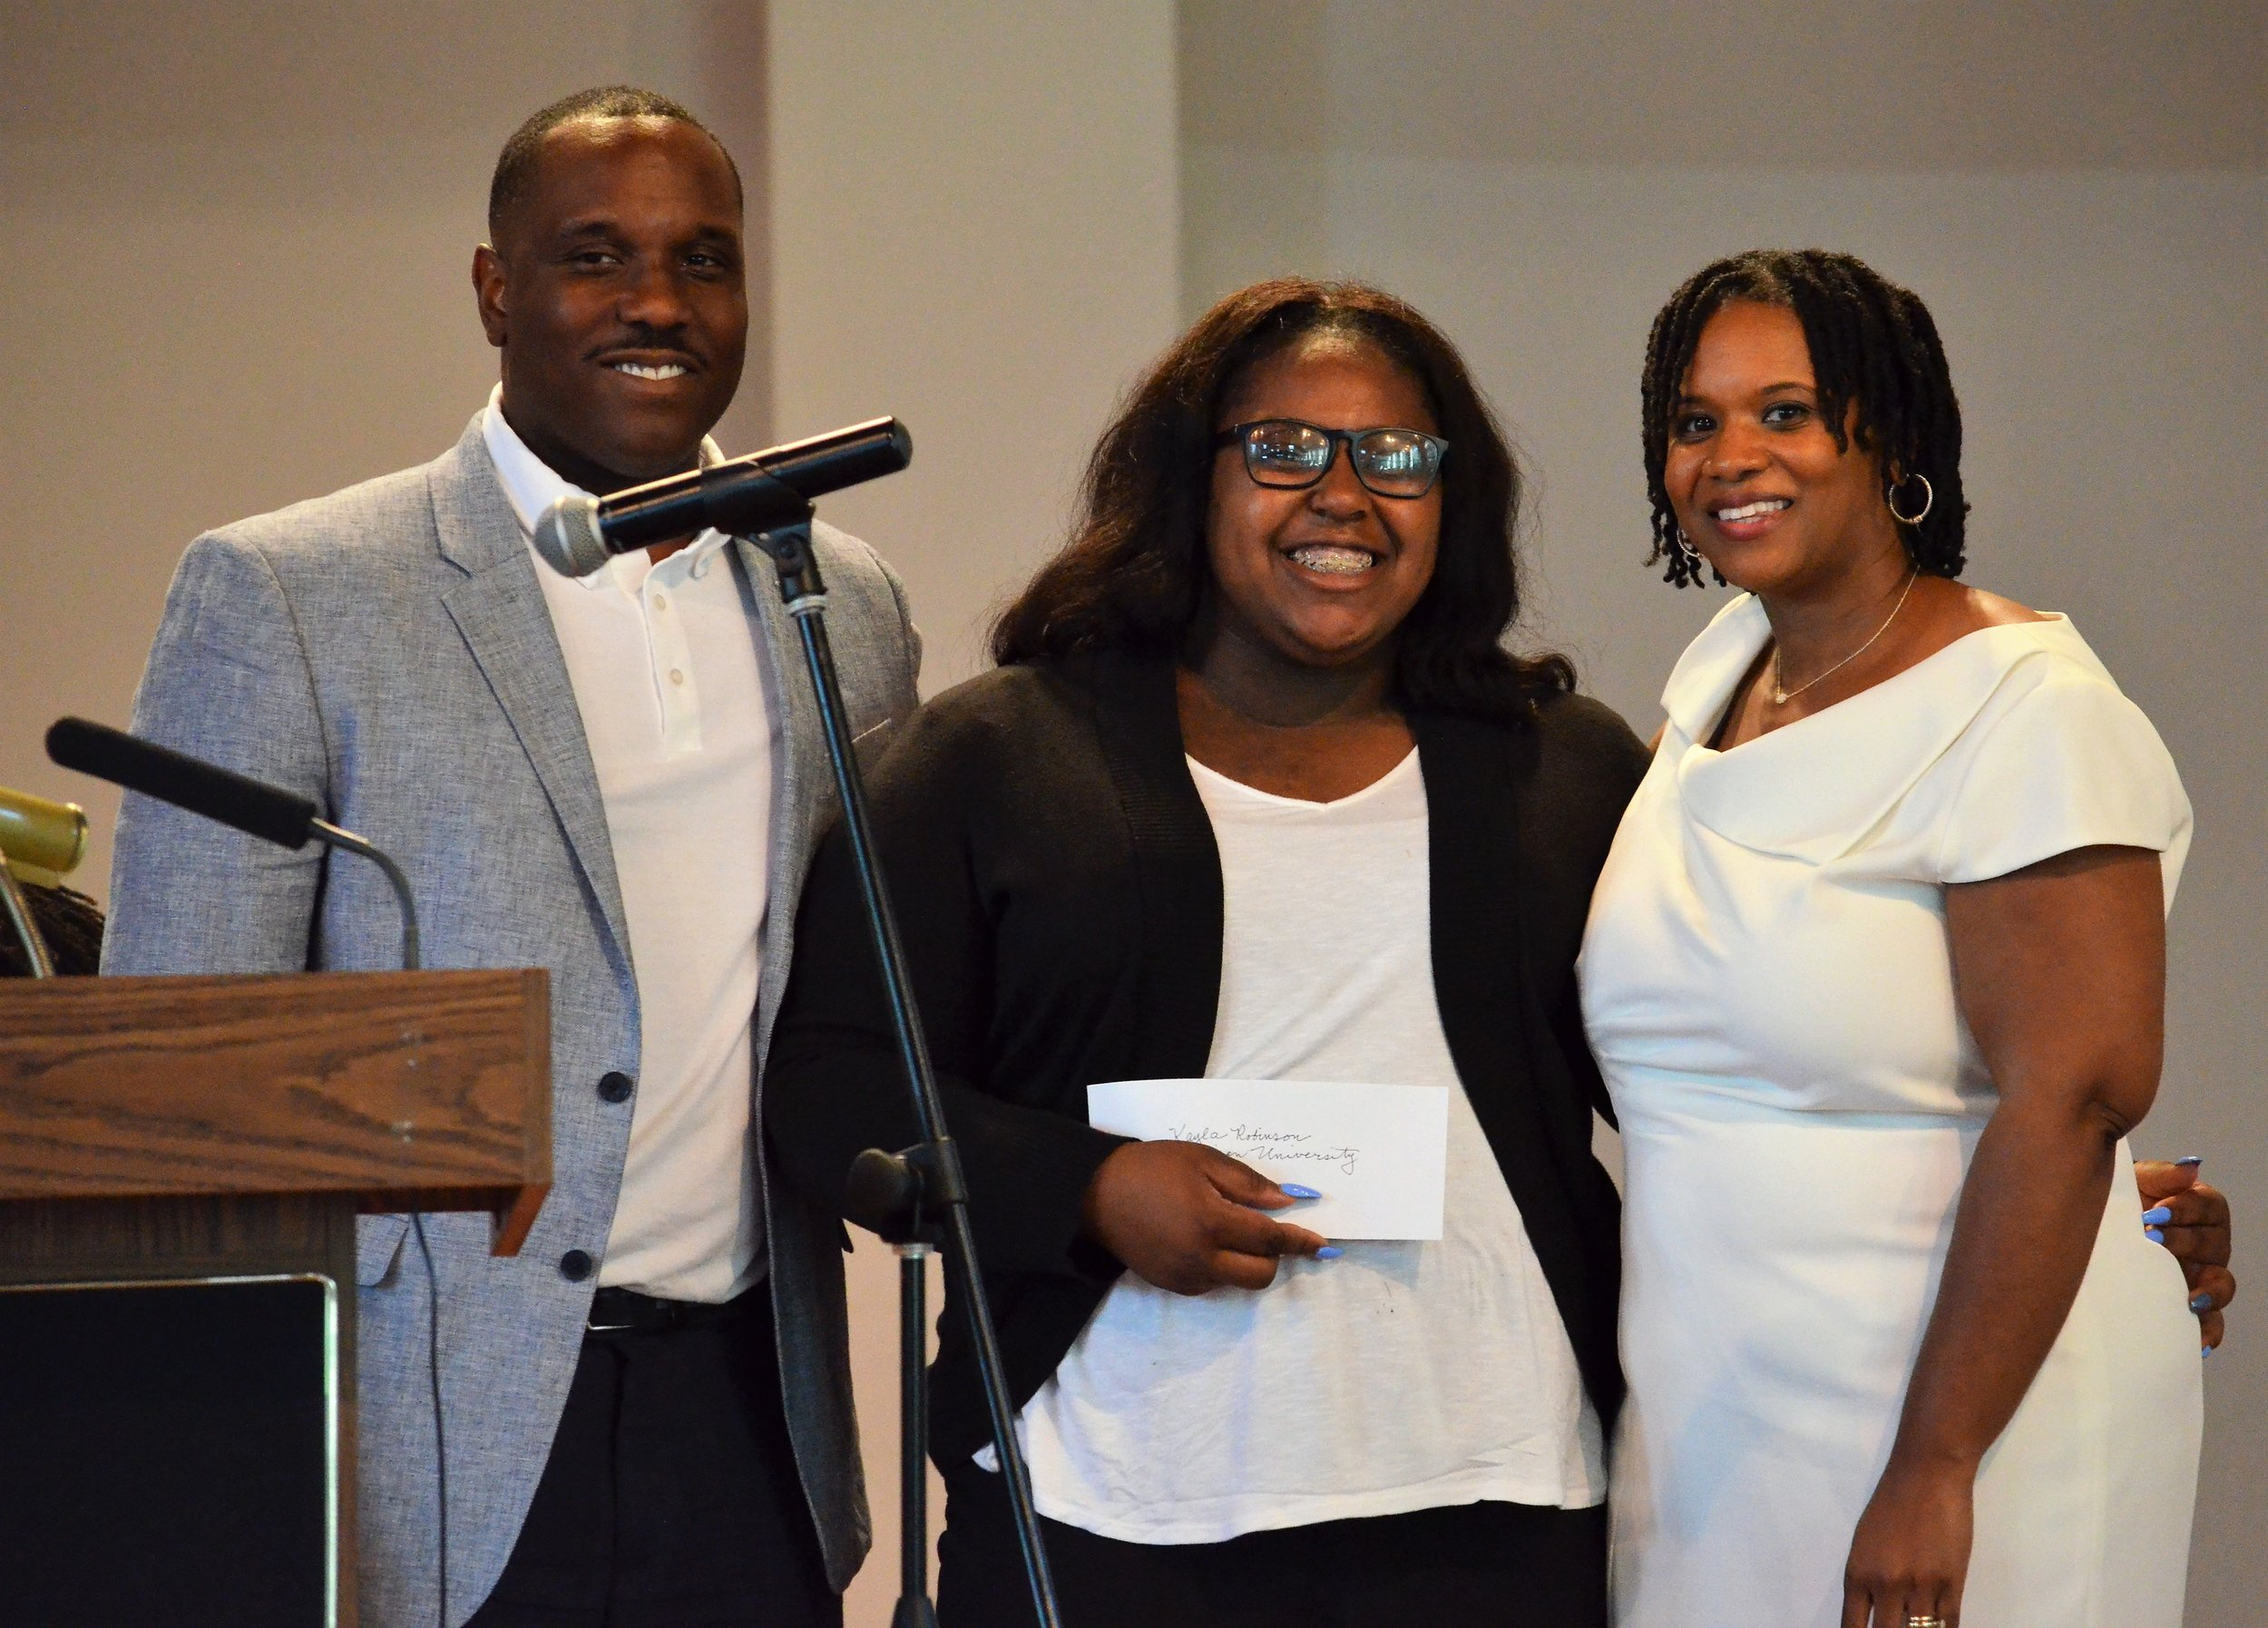 - (Left to right) Kamuzu Saunders, son and family representative of Dr. Jowava Morrow; Kayla Robinson (Dr. Jowava Morrow Book Scholarship Award recipient); and Yaminah Leggett-Wells. Kayla is attending The American University in Washington, D.C.